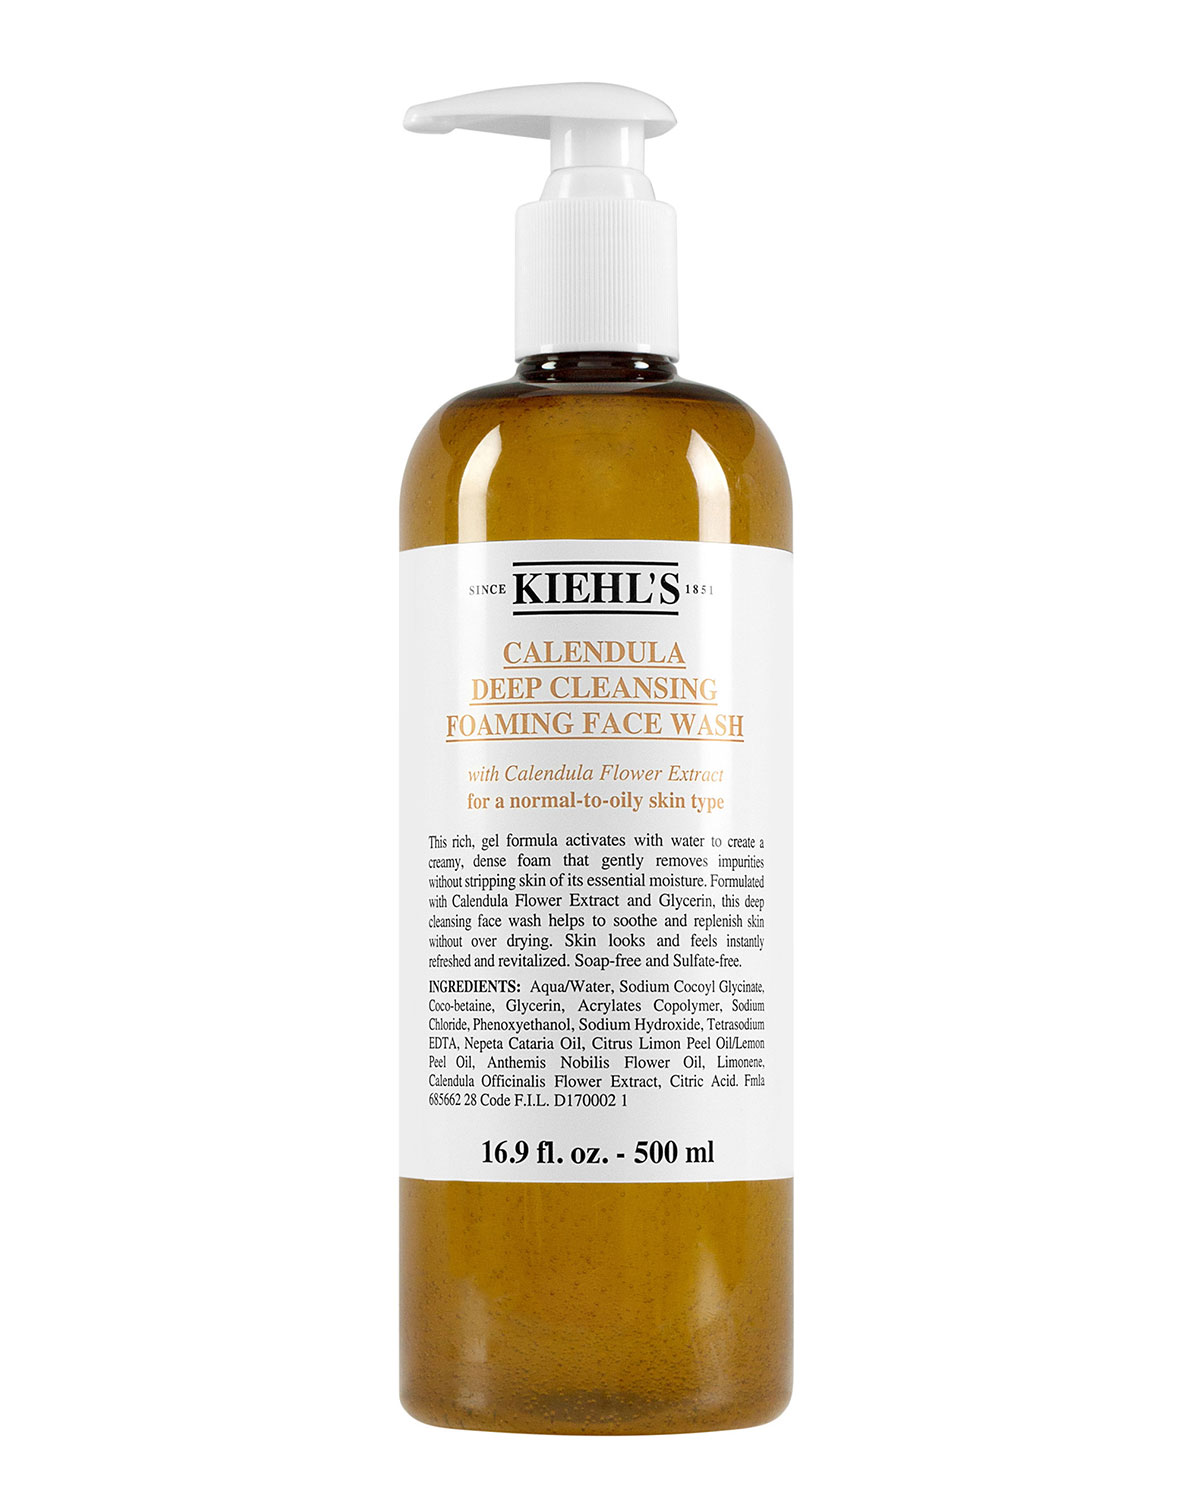 Kiehl's Since 1851 16.9 oz. Calendula Deep Cleansing Foaming Face Wash